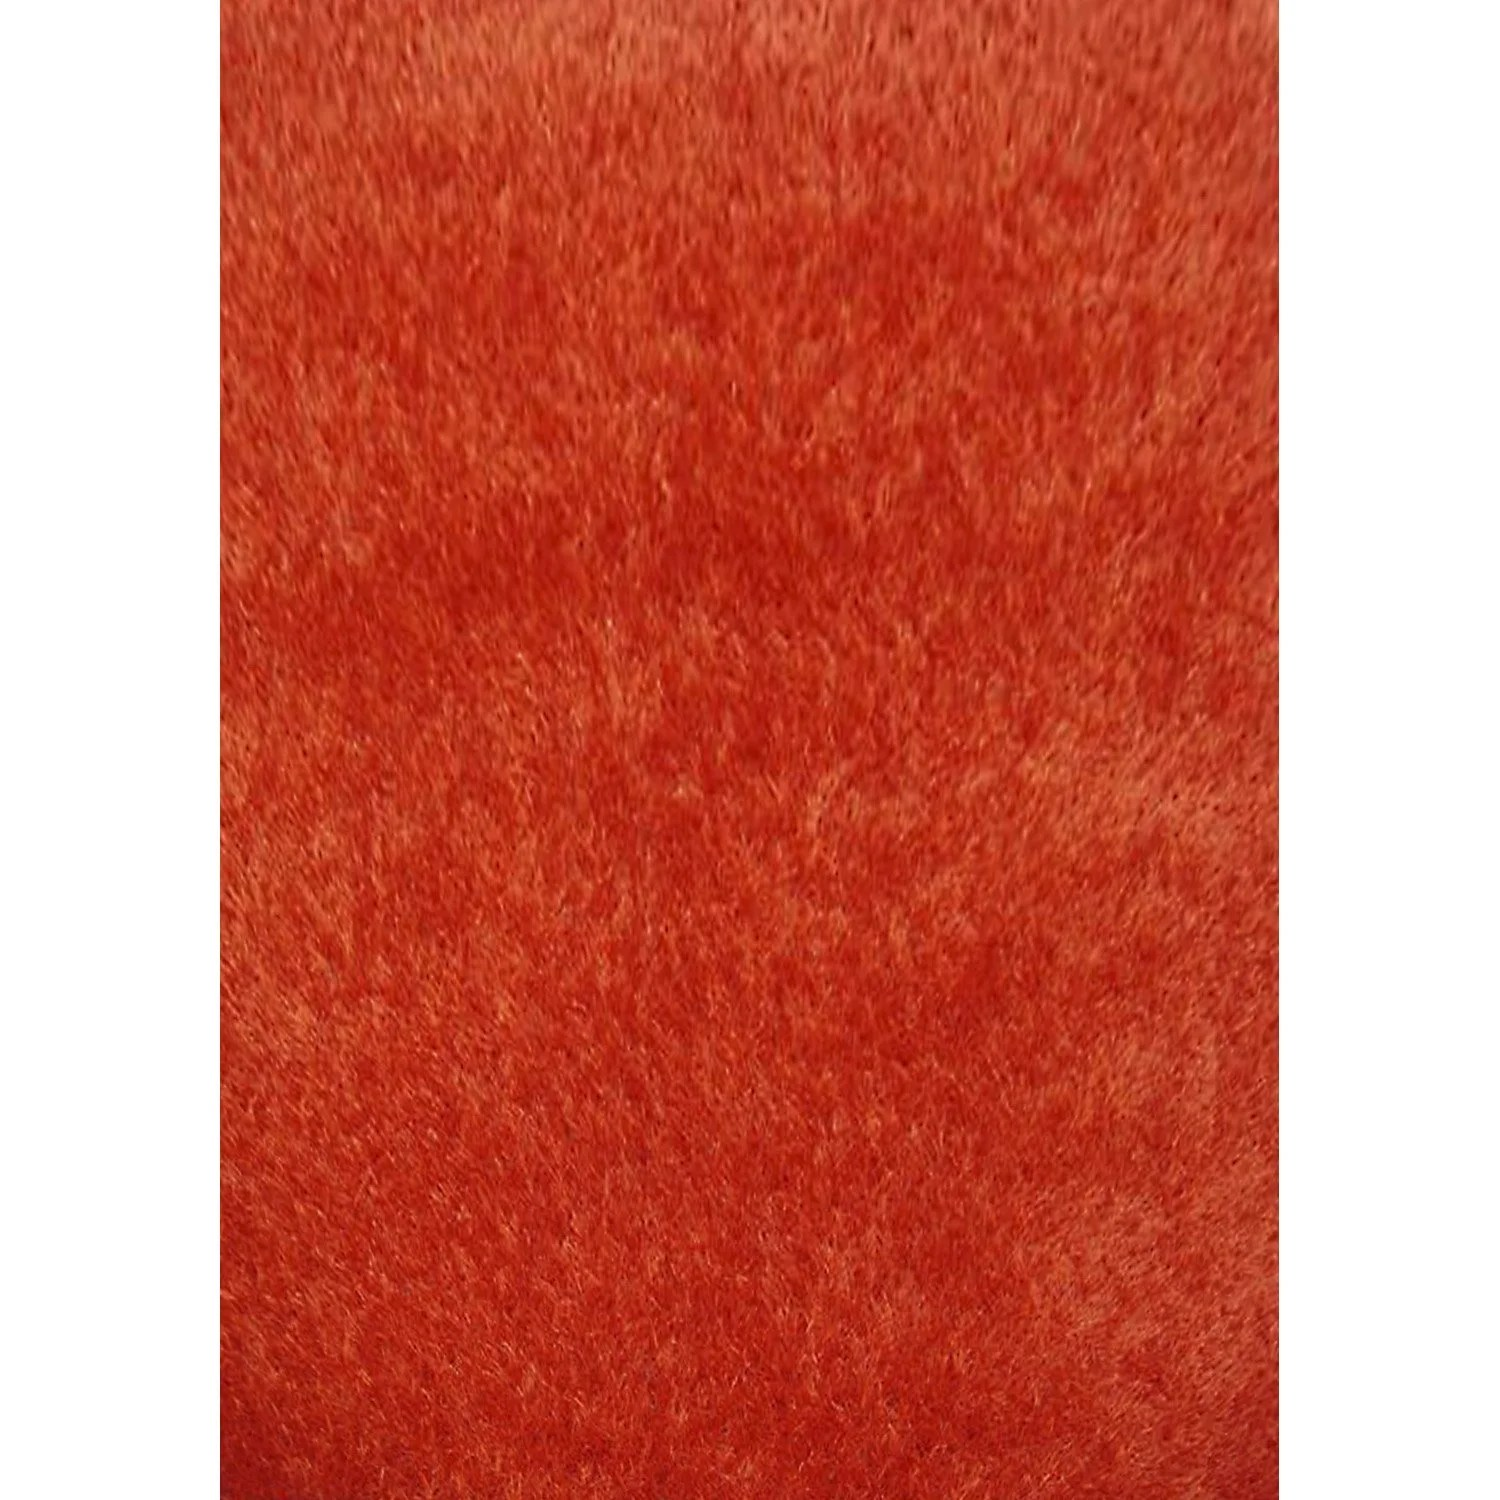 Tapis Shaggy Orange Tapis Orange Rectangulaire L 120 X L 170 Cm Lilou